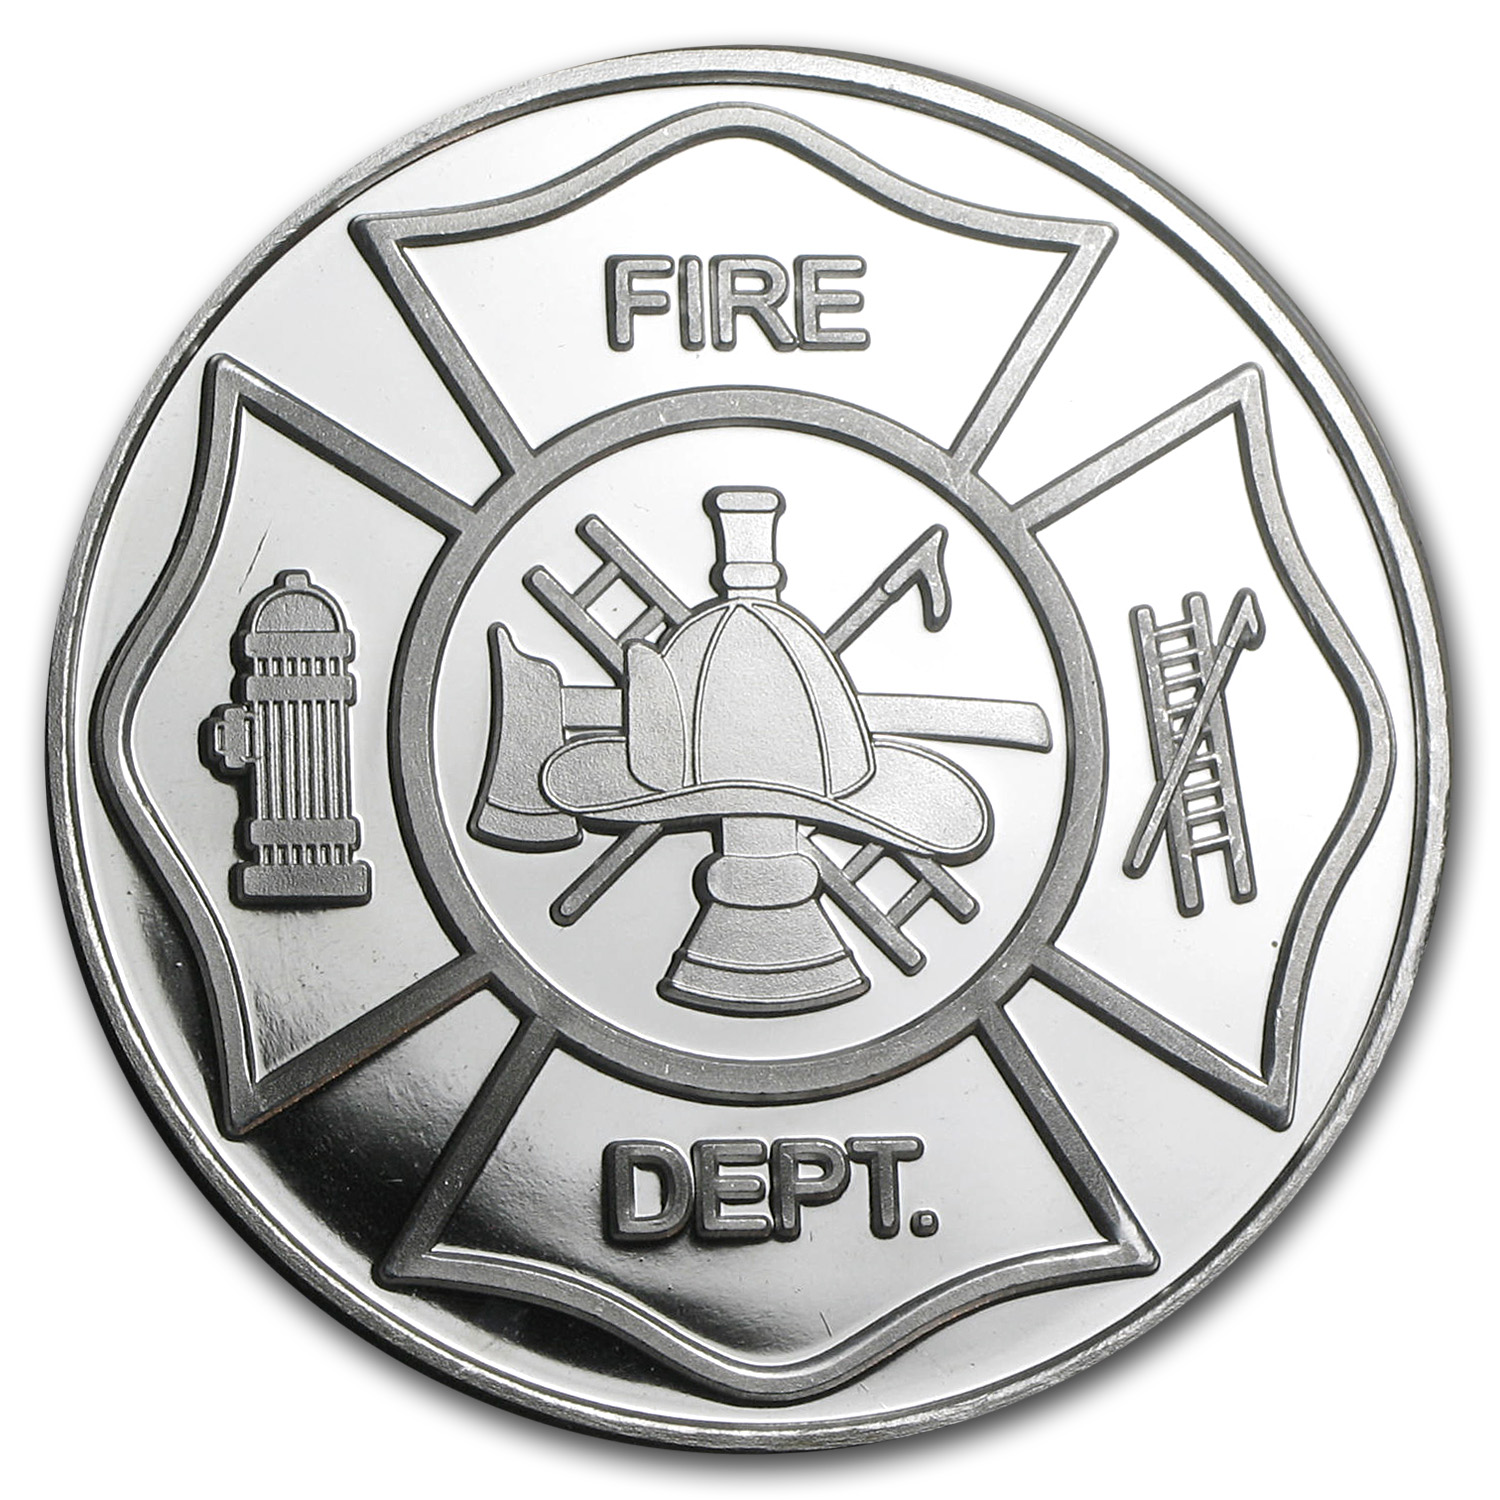 1 oz Silver Round - Fire Department (w/Box & Capsule)